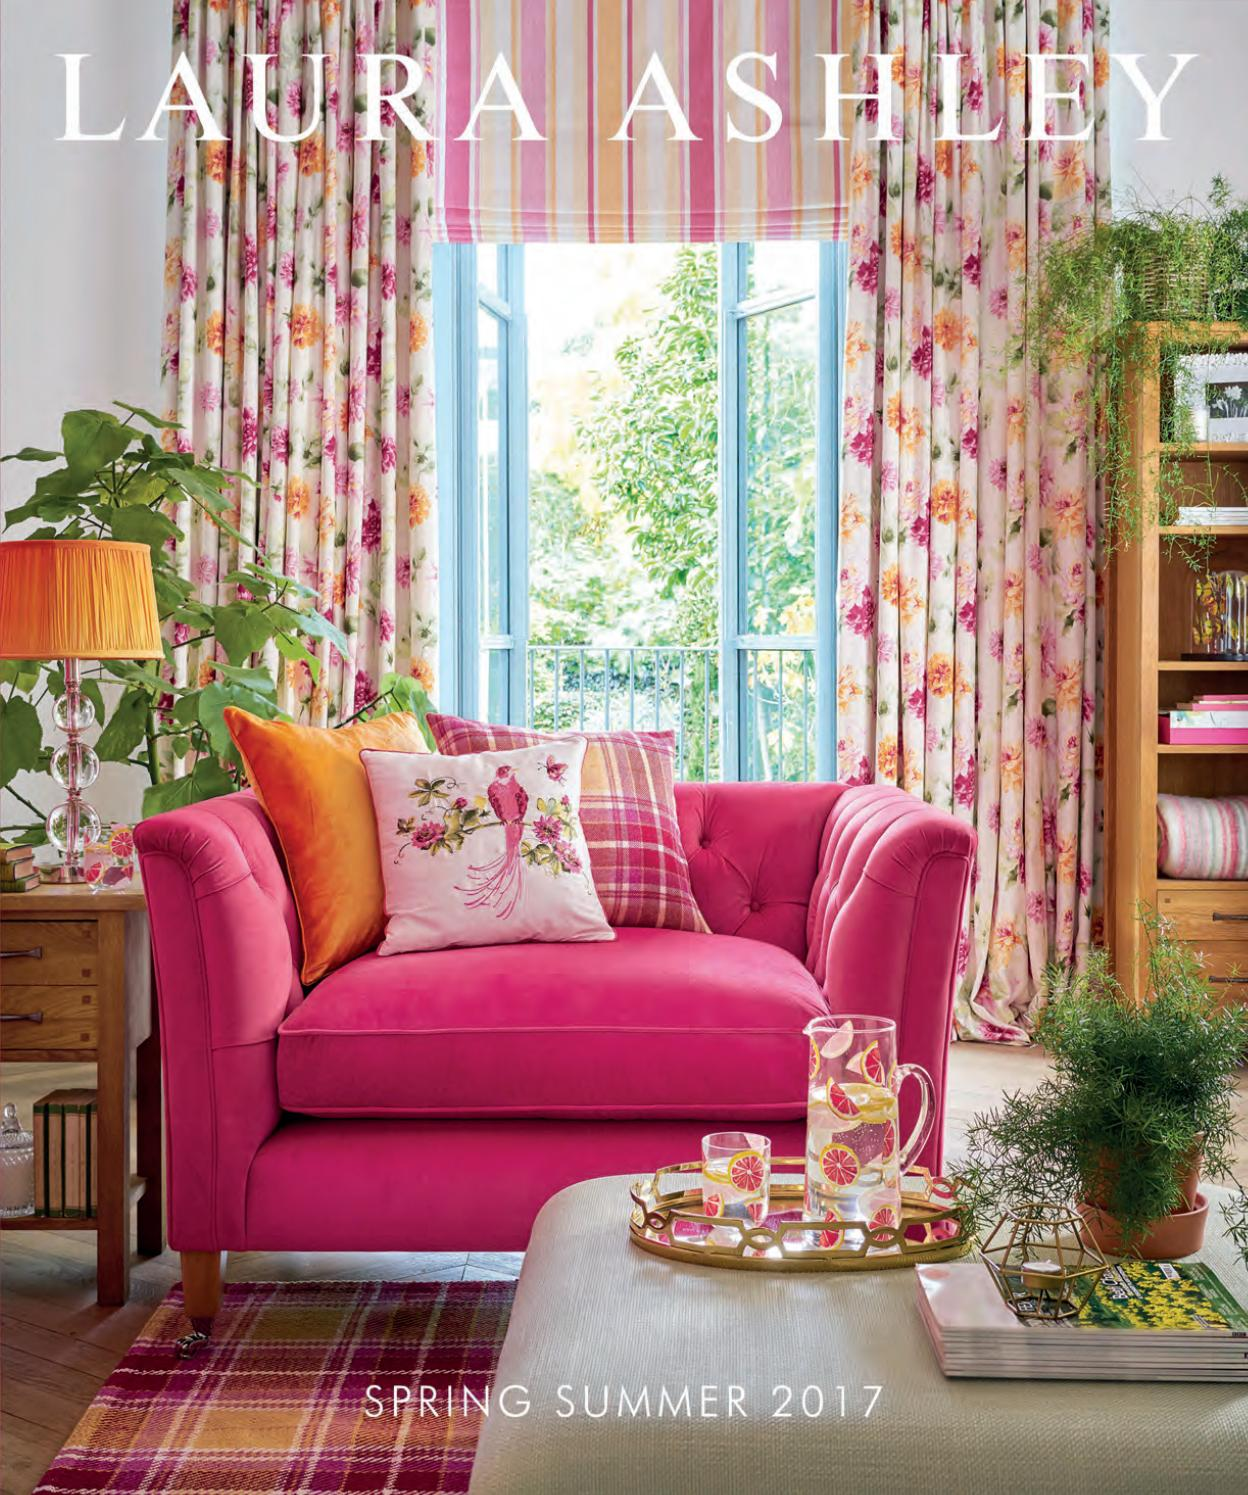 LAURA ASHLEY Home SS 2017 New Catalogue by Stanislav